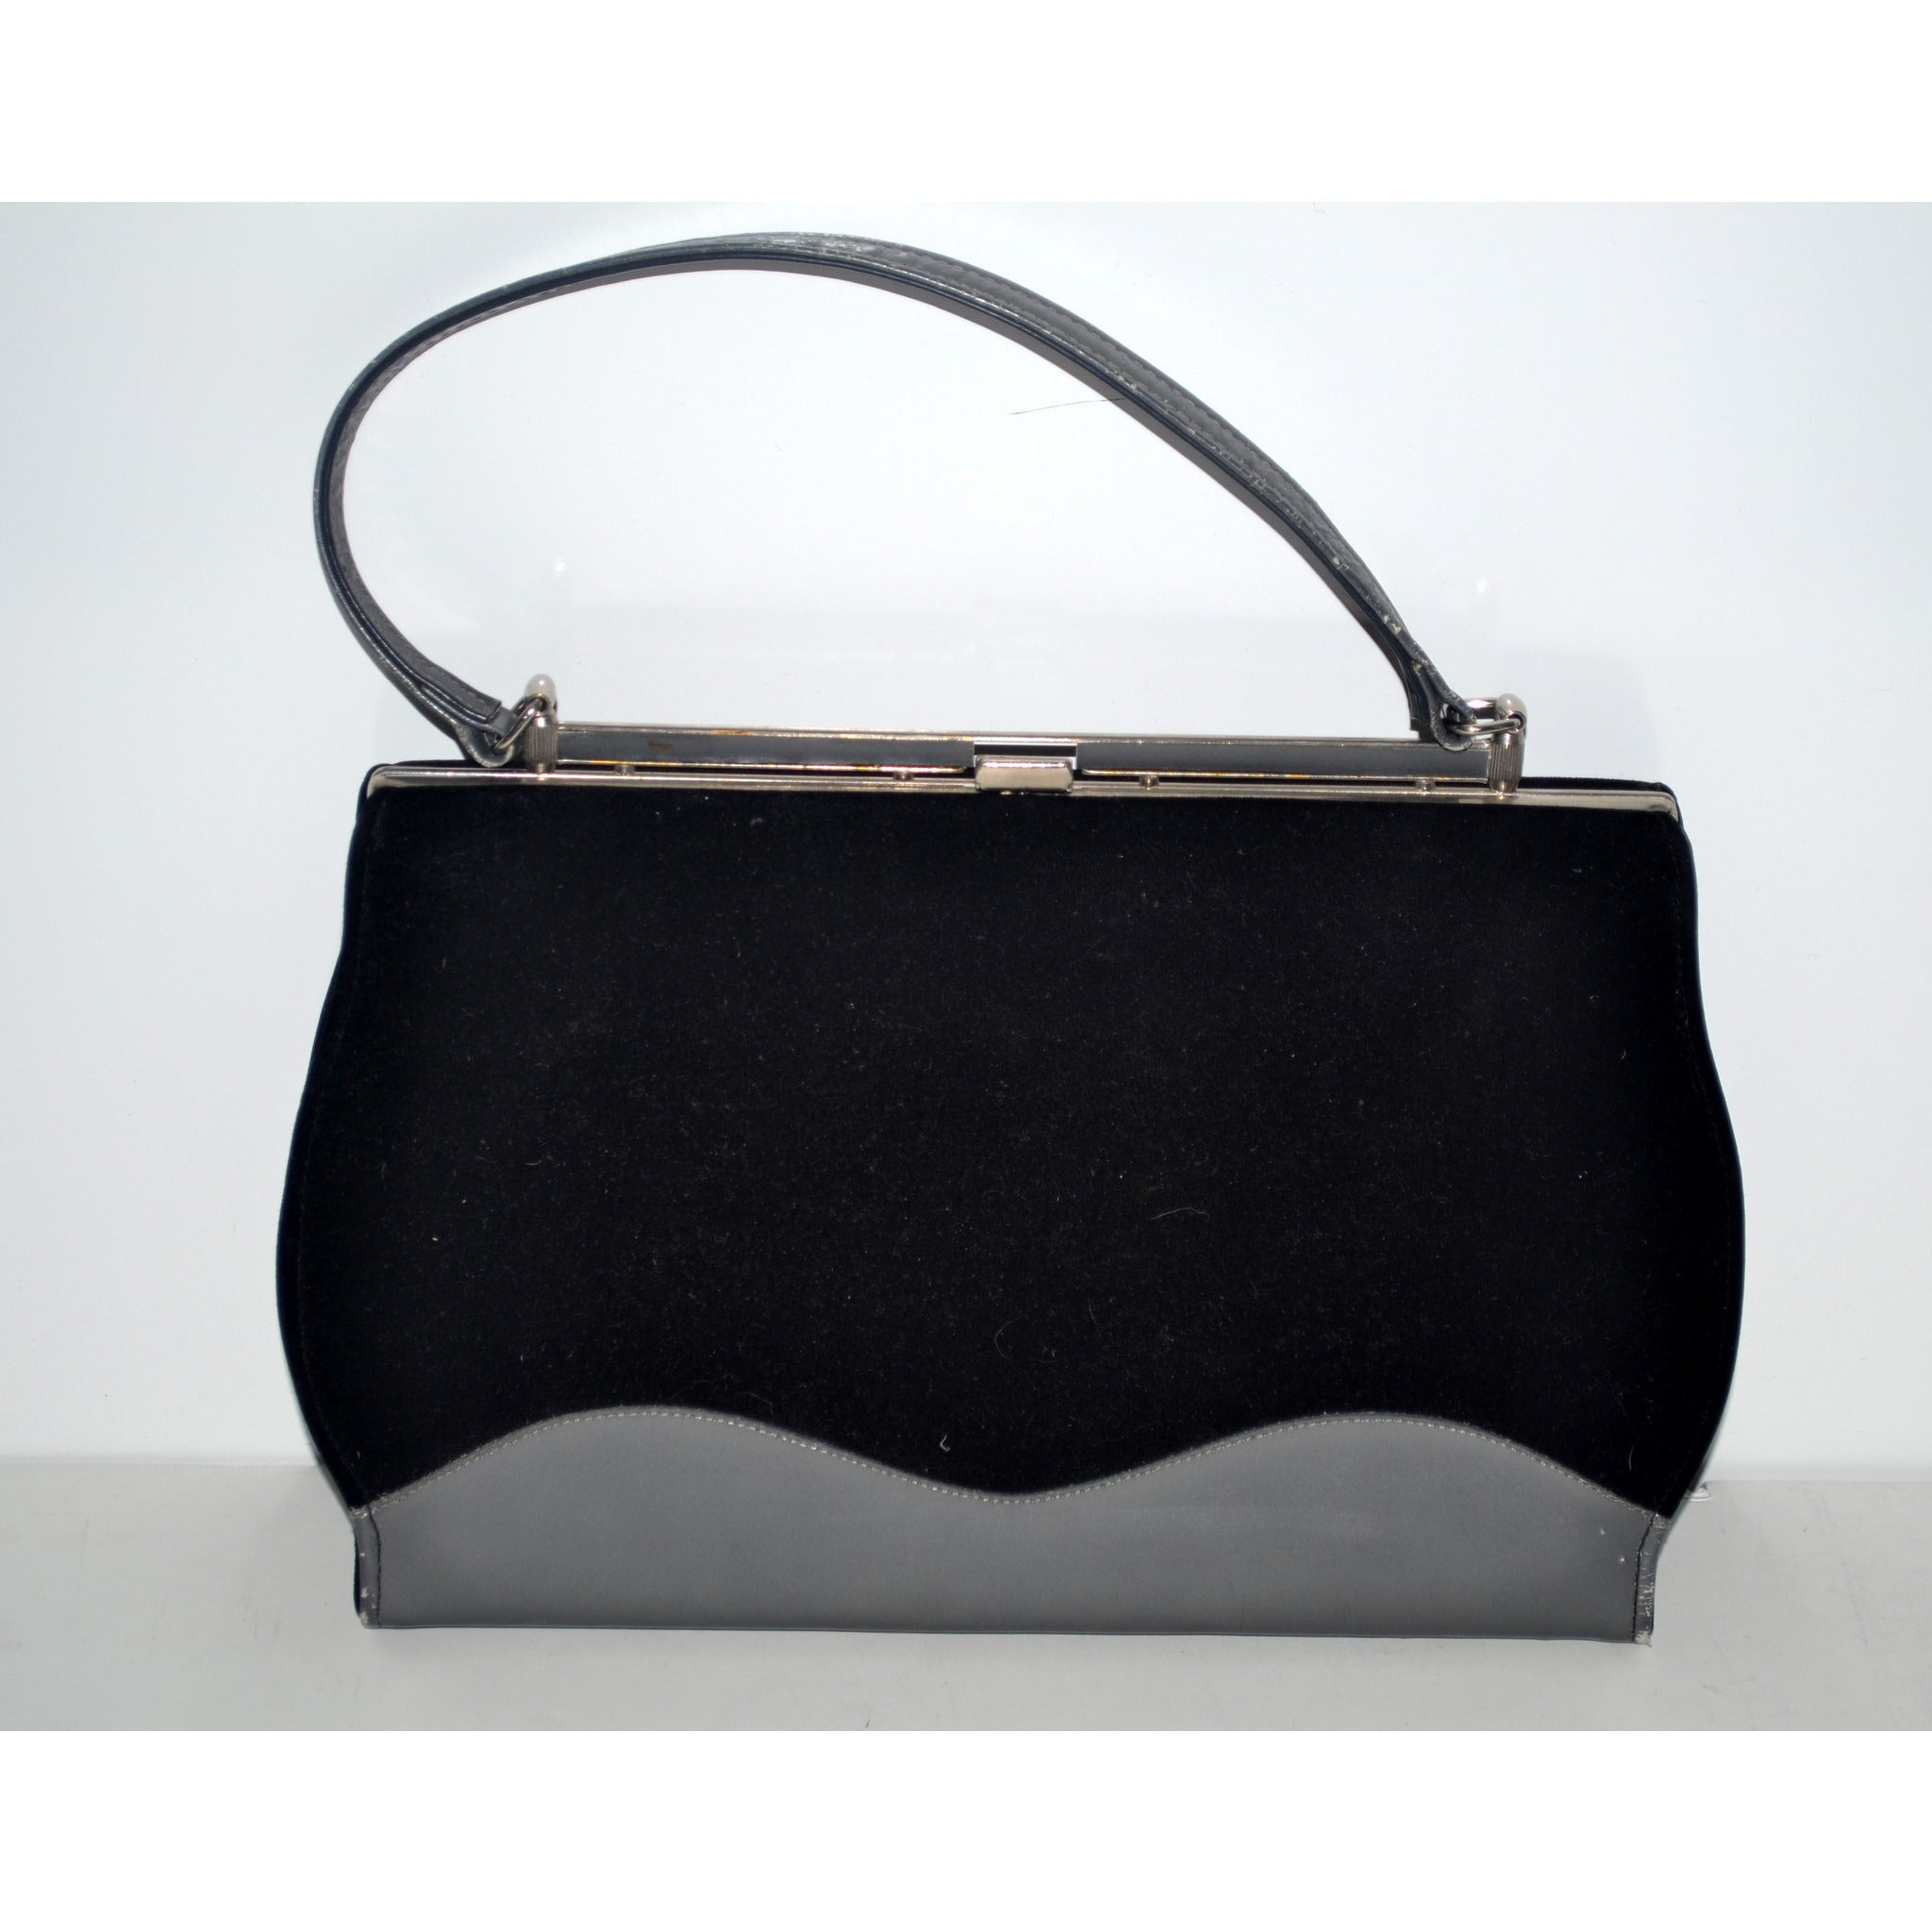 Vintage Black Fashion Purse By Town & Country